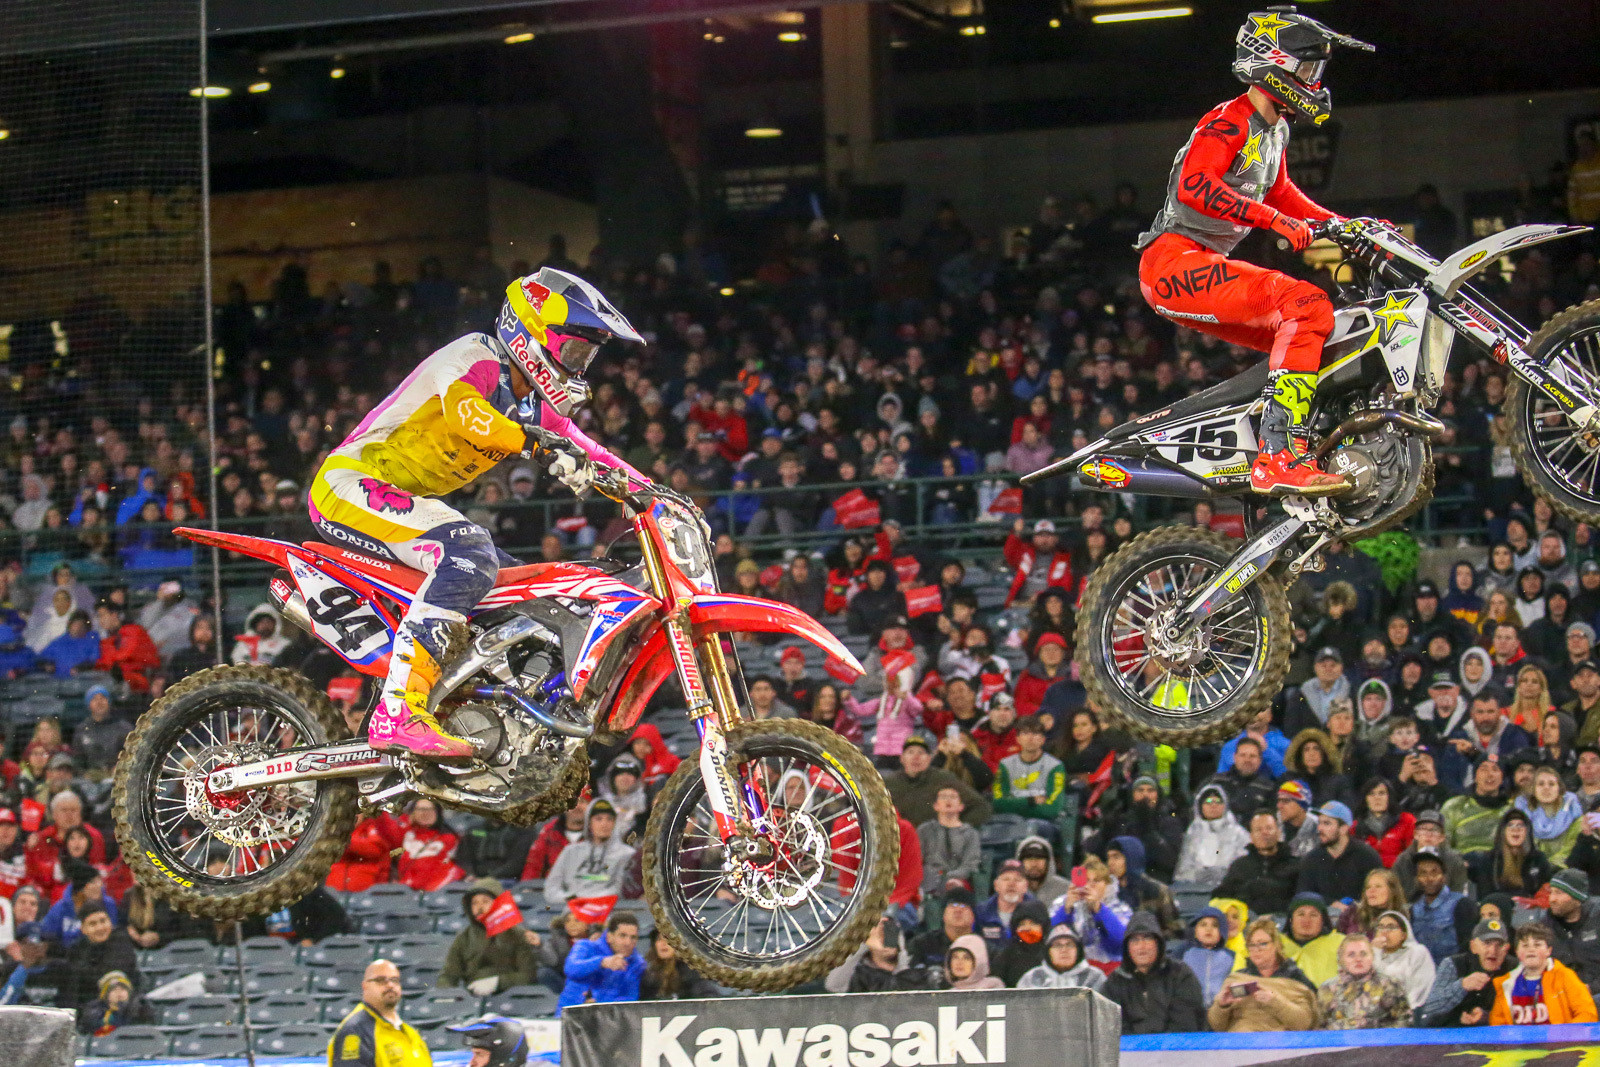 We got a sneak peek of the night's main event in the first 450 heat race, where Ken Roczen and Dean Wilson battled for the win. Kenny took this one.